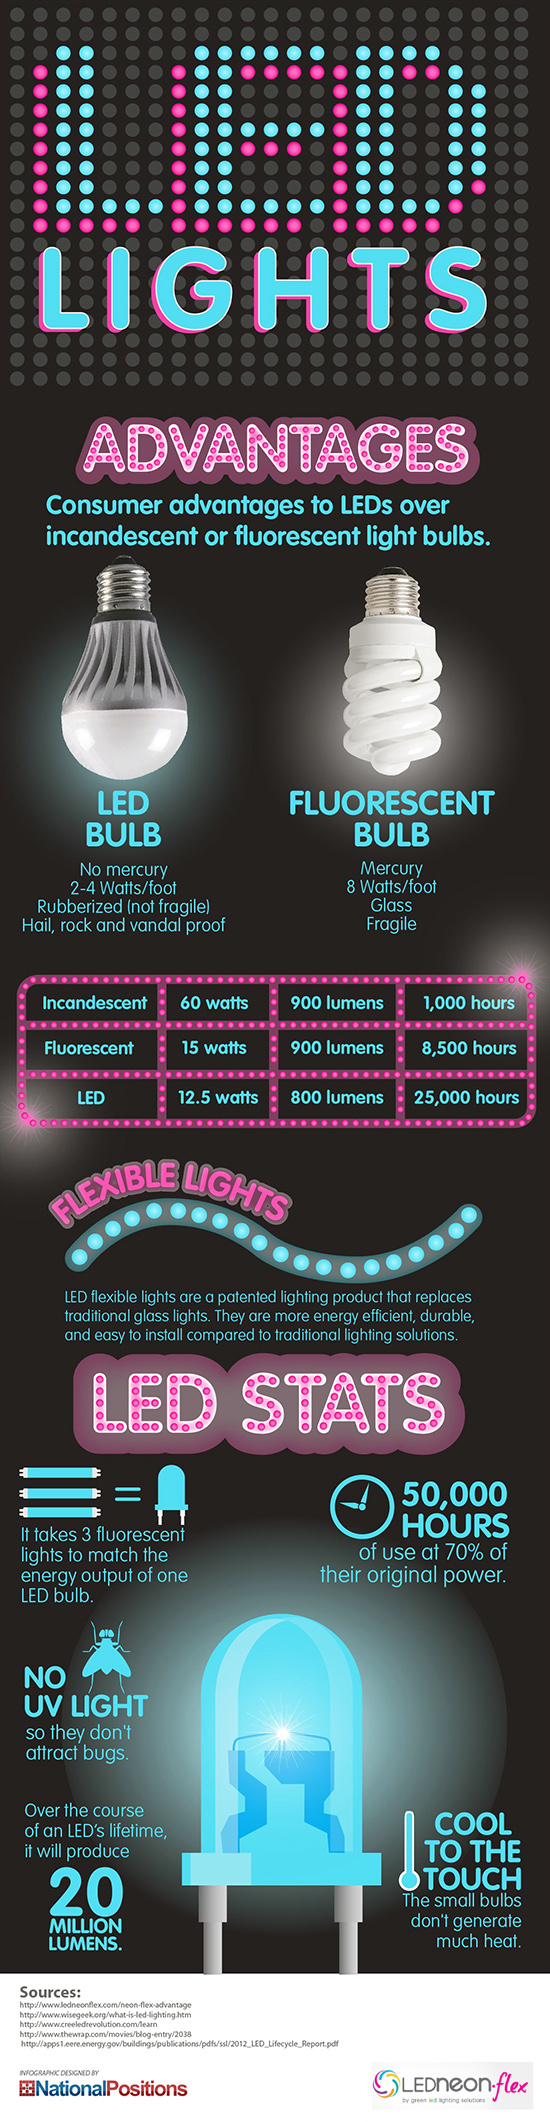 LED Lights Advantages And Stats [INFOGRAPHIC] #led #lights ...